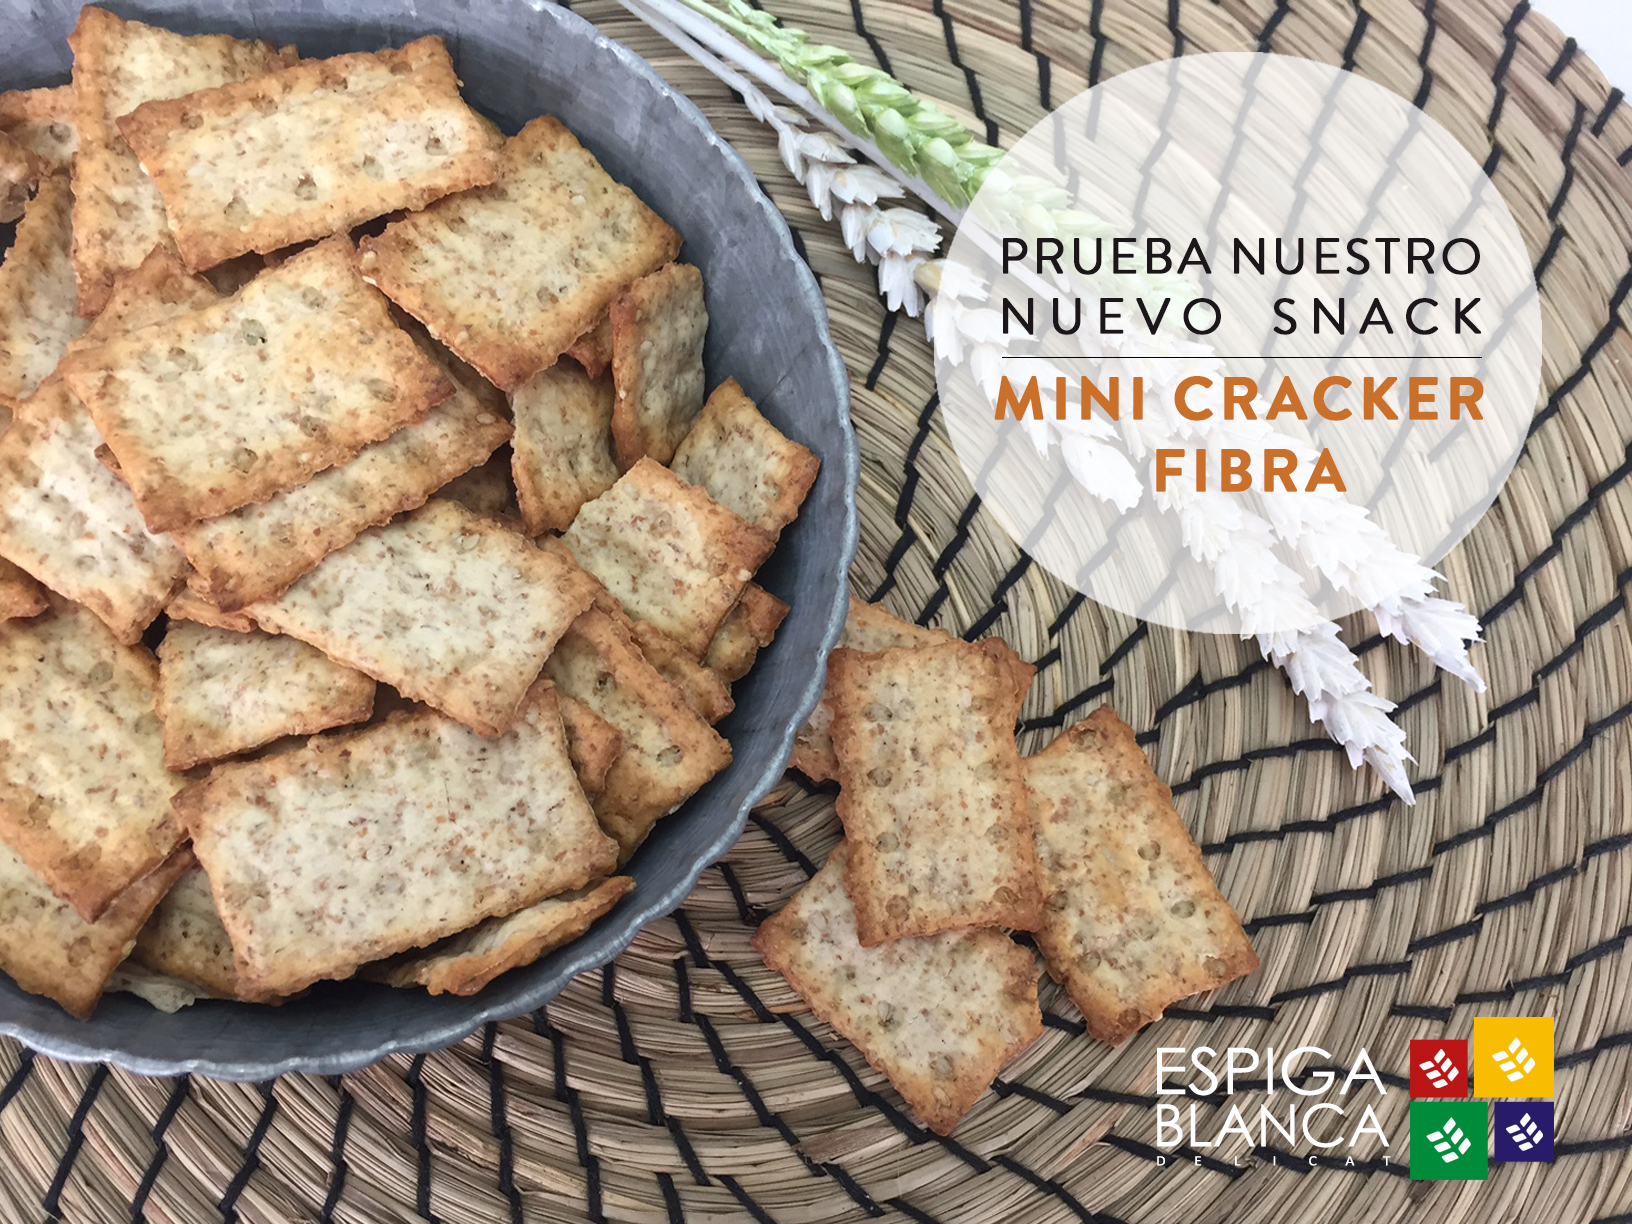 MINI CRACKER FIBRA!